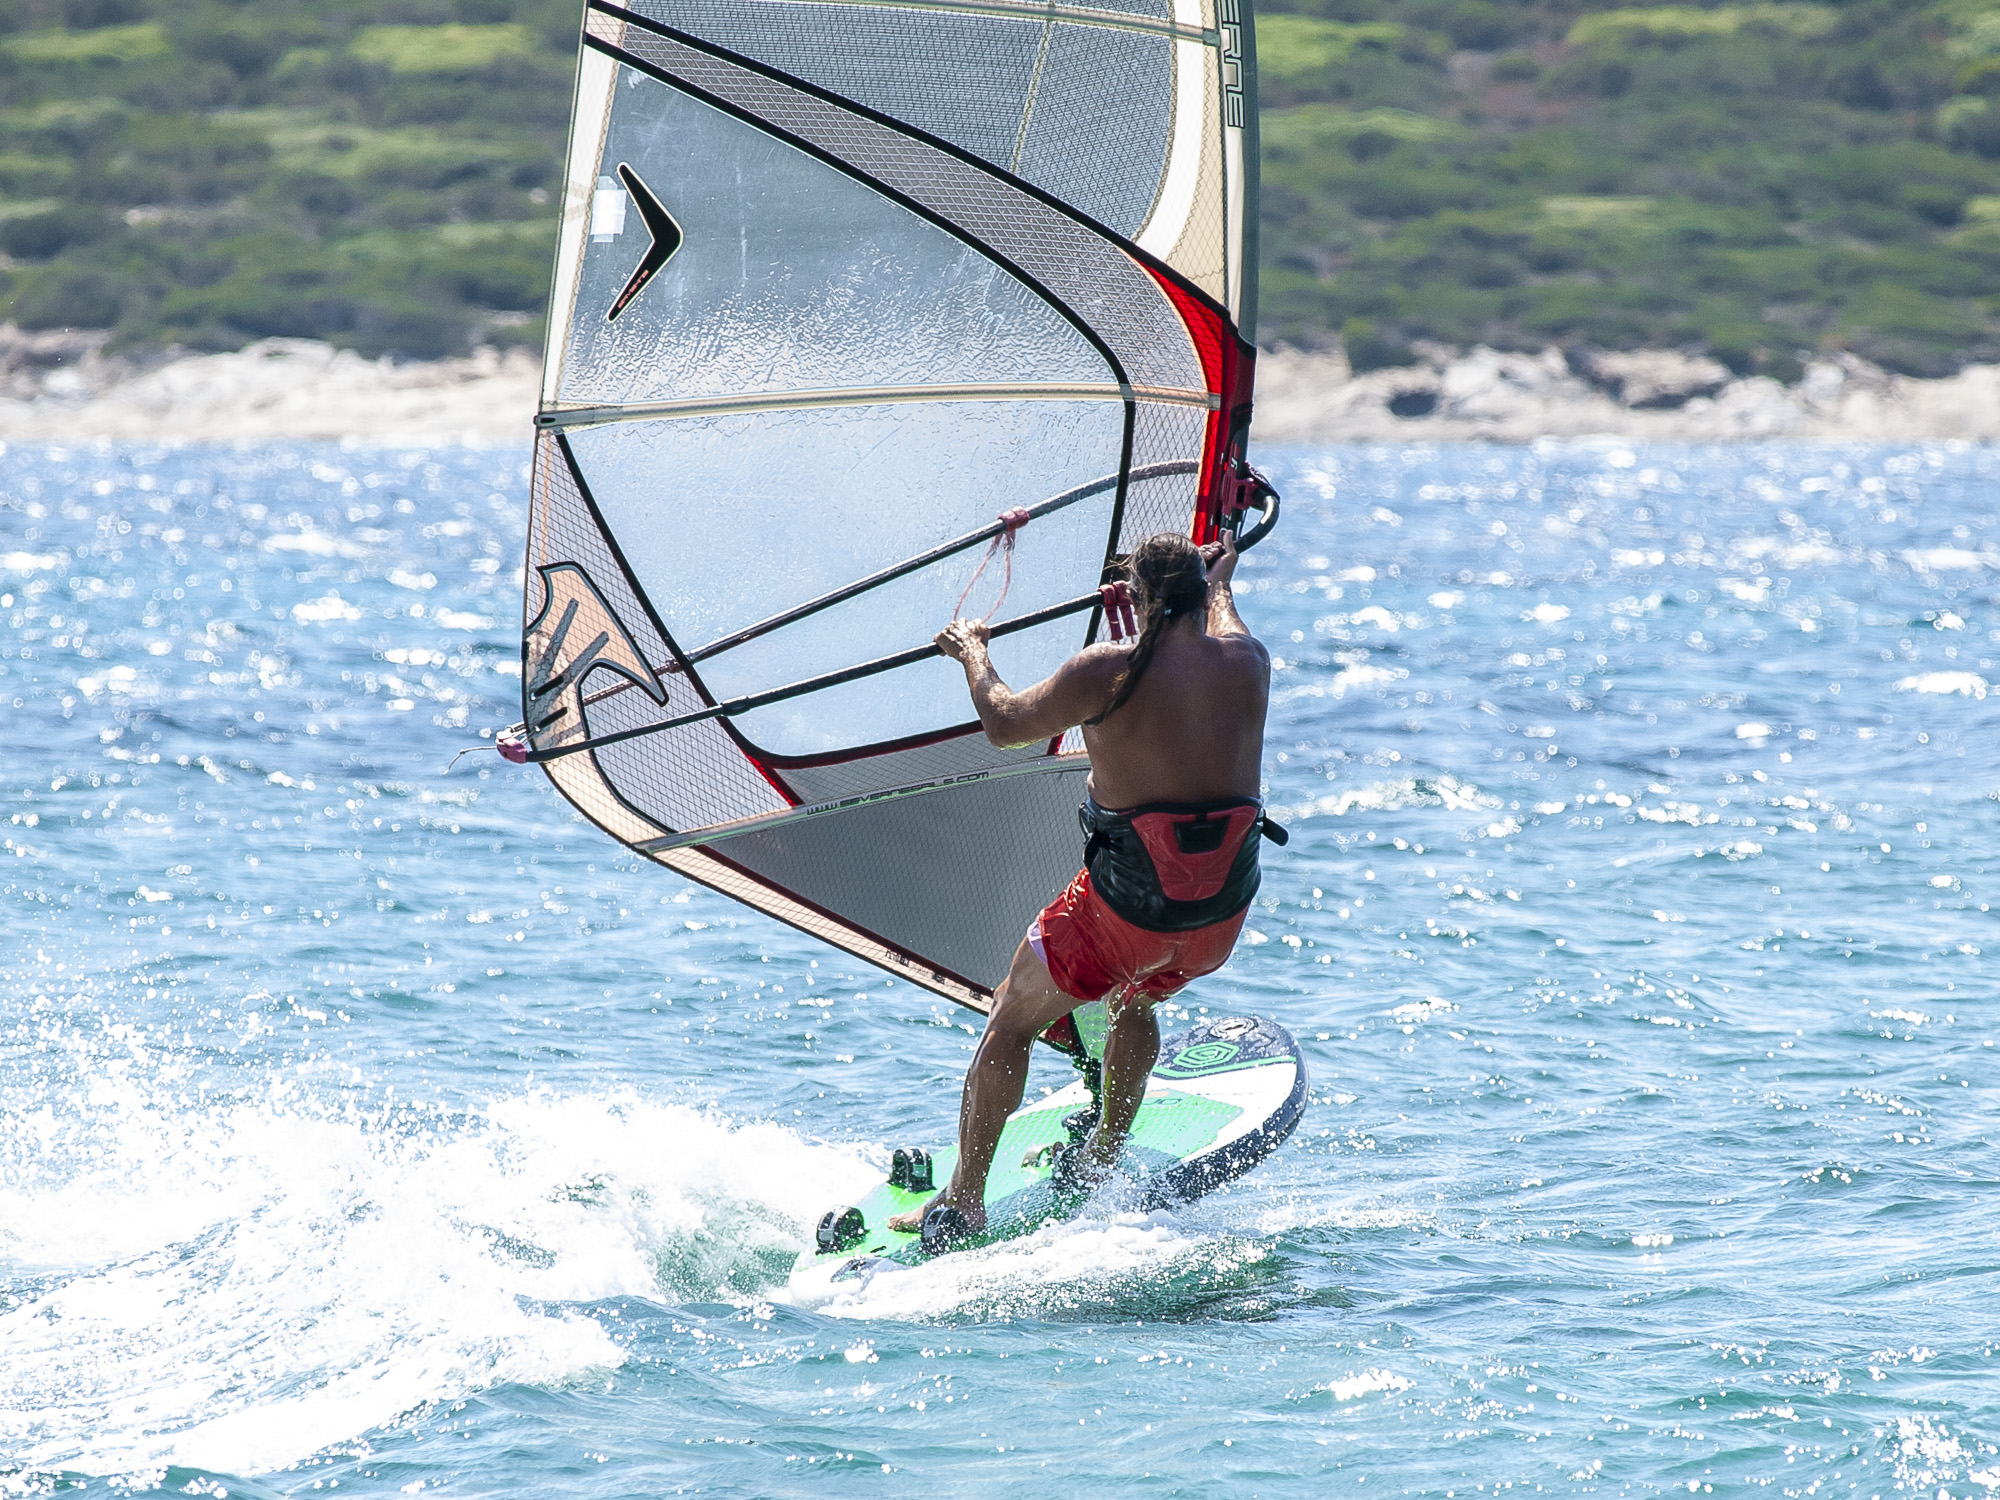 Windsurf - Kitegreece com